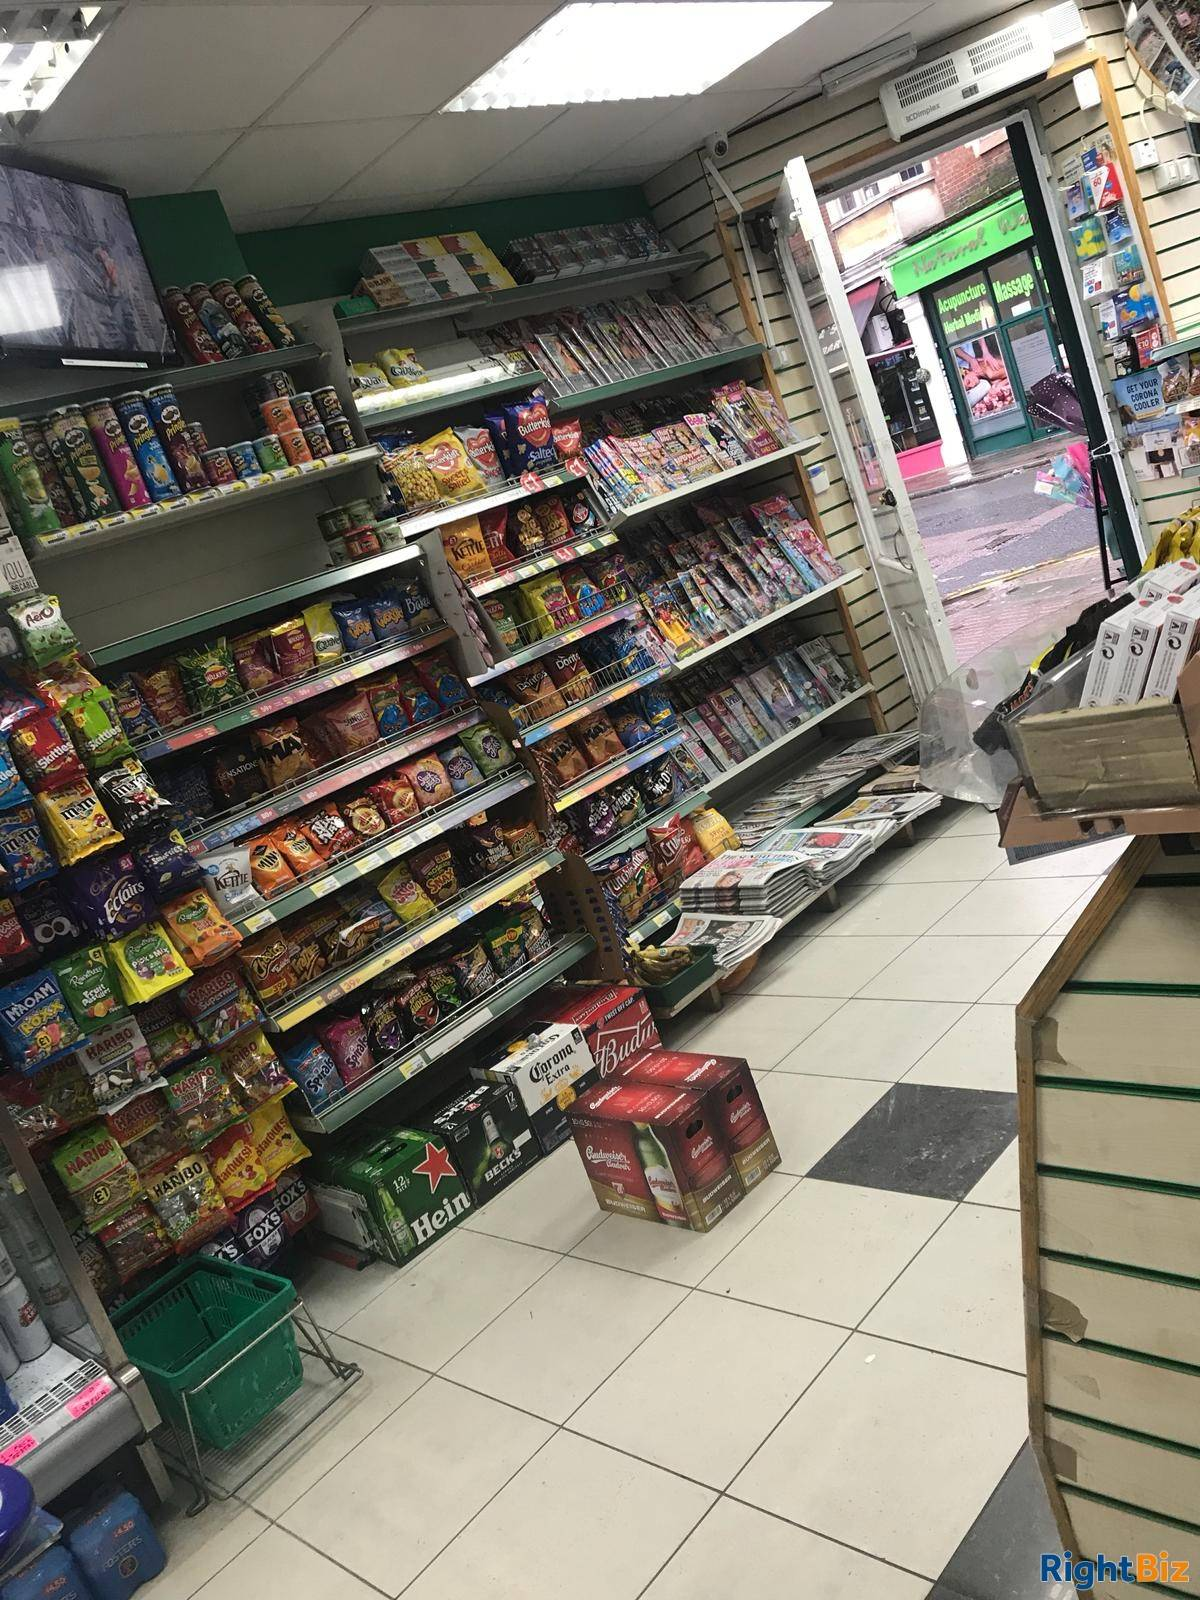 Convenient Store For sale in London Leasehold  - Image 2